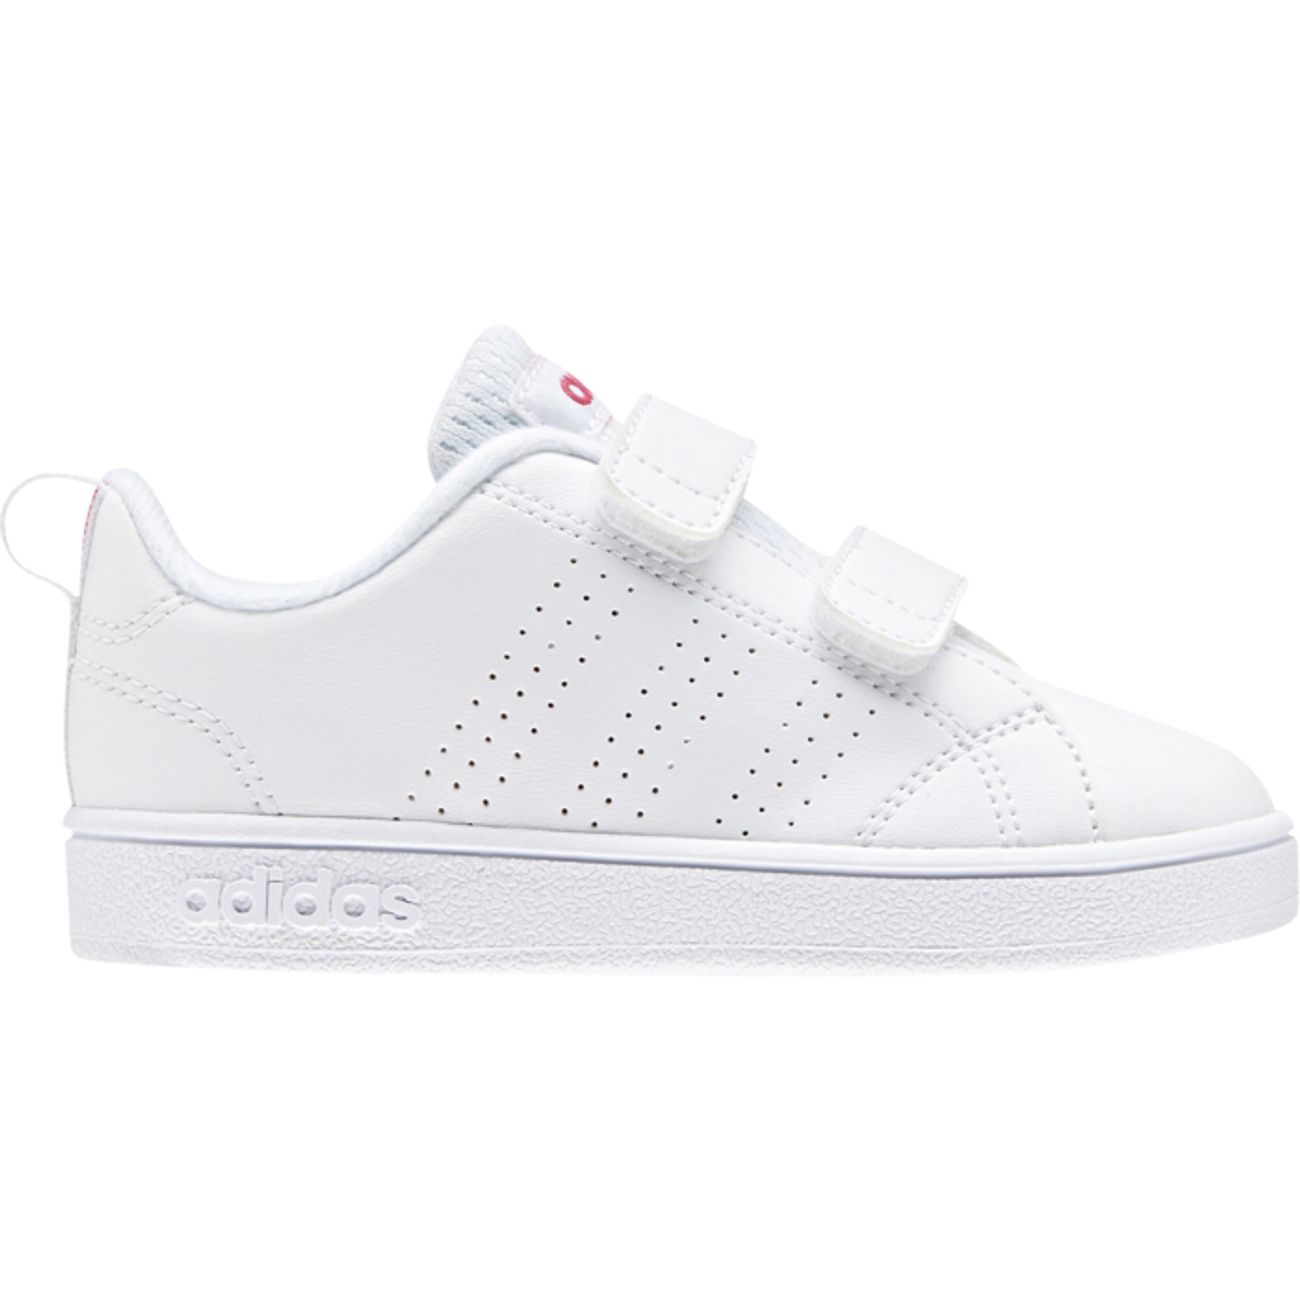 Vlc Basses Clean Chaussures Adidas Bébé Advantage Vs rxBtQCsdho